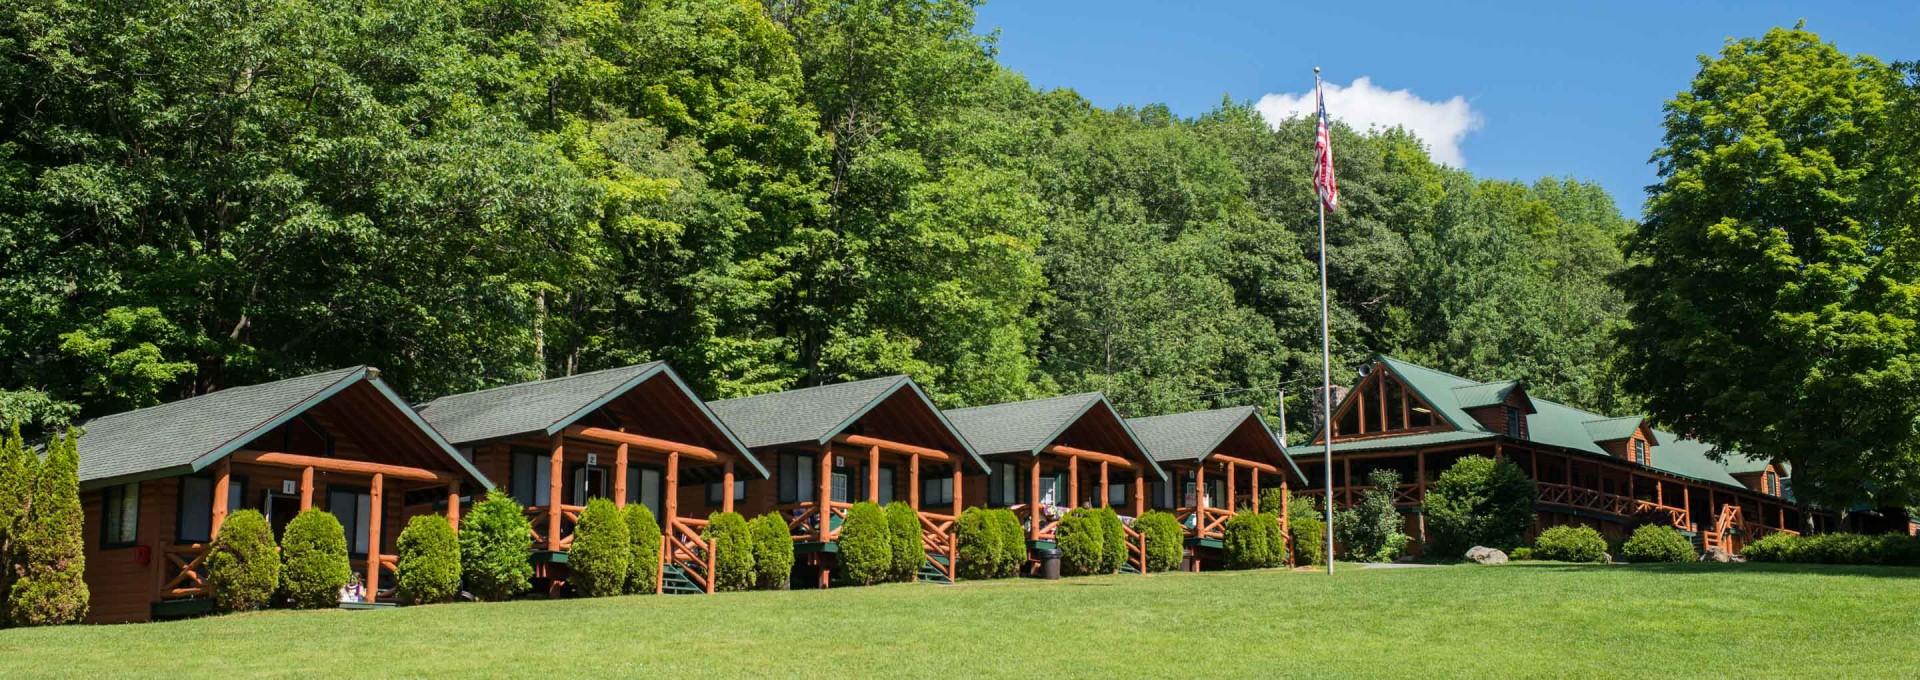 timber lake Wood's tall timber resort offers various lots for camping our lots have 30 amp or 50 amp electric hook-ups for campers of all sizes.